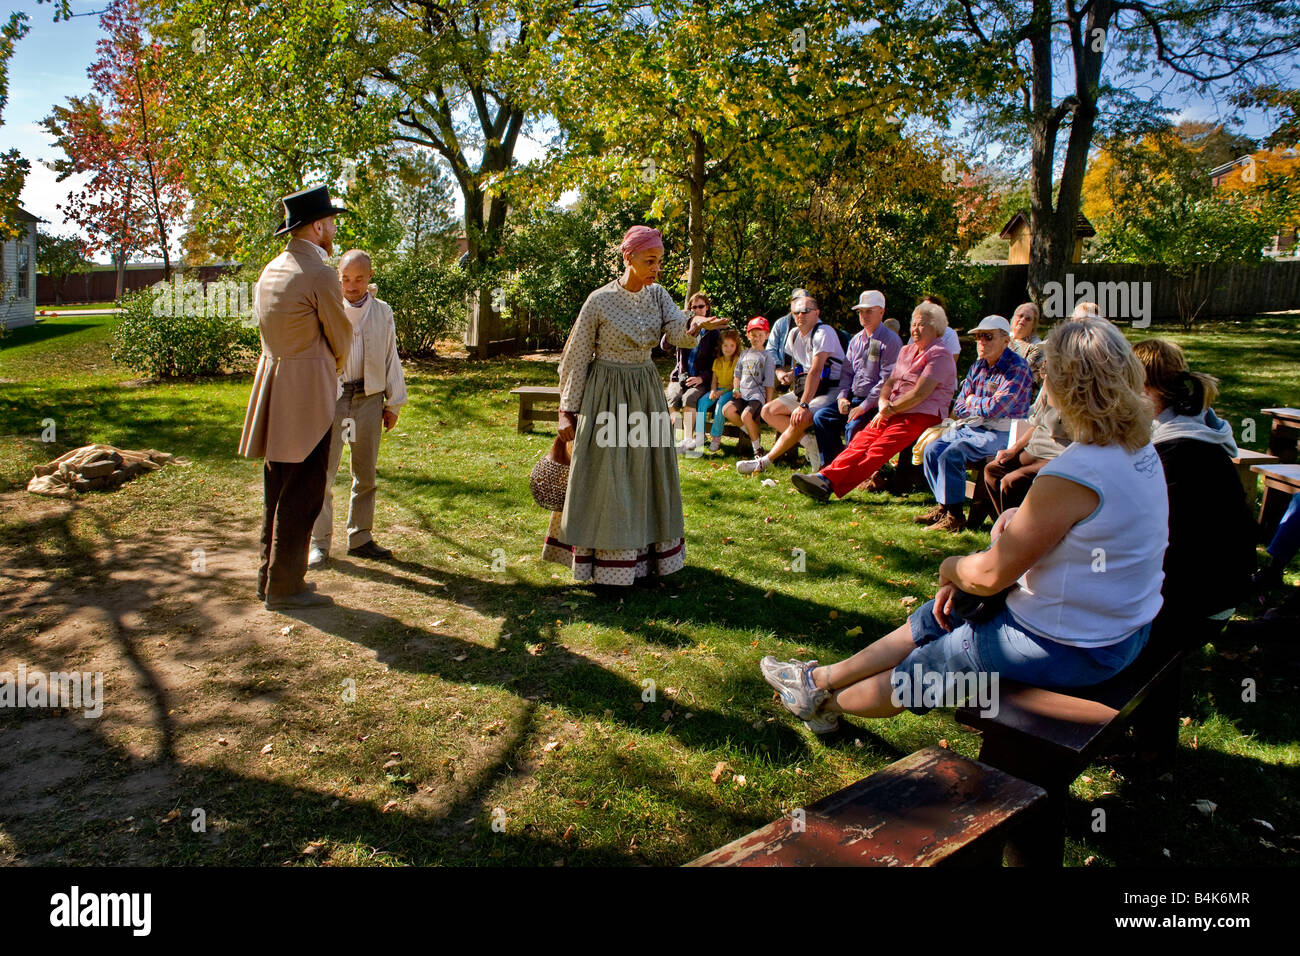 Performers in period costume act out pre Civil War slave tales at a replica of slave quarters at Greenfield Village - Stock Image